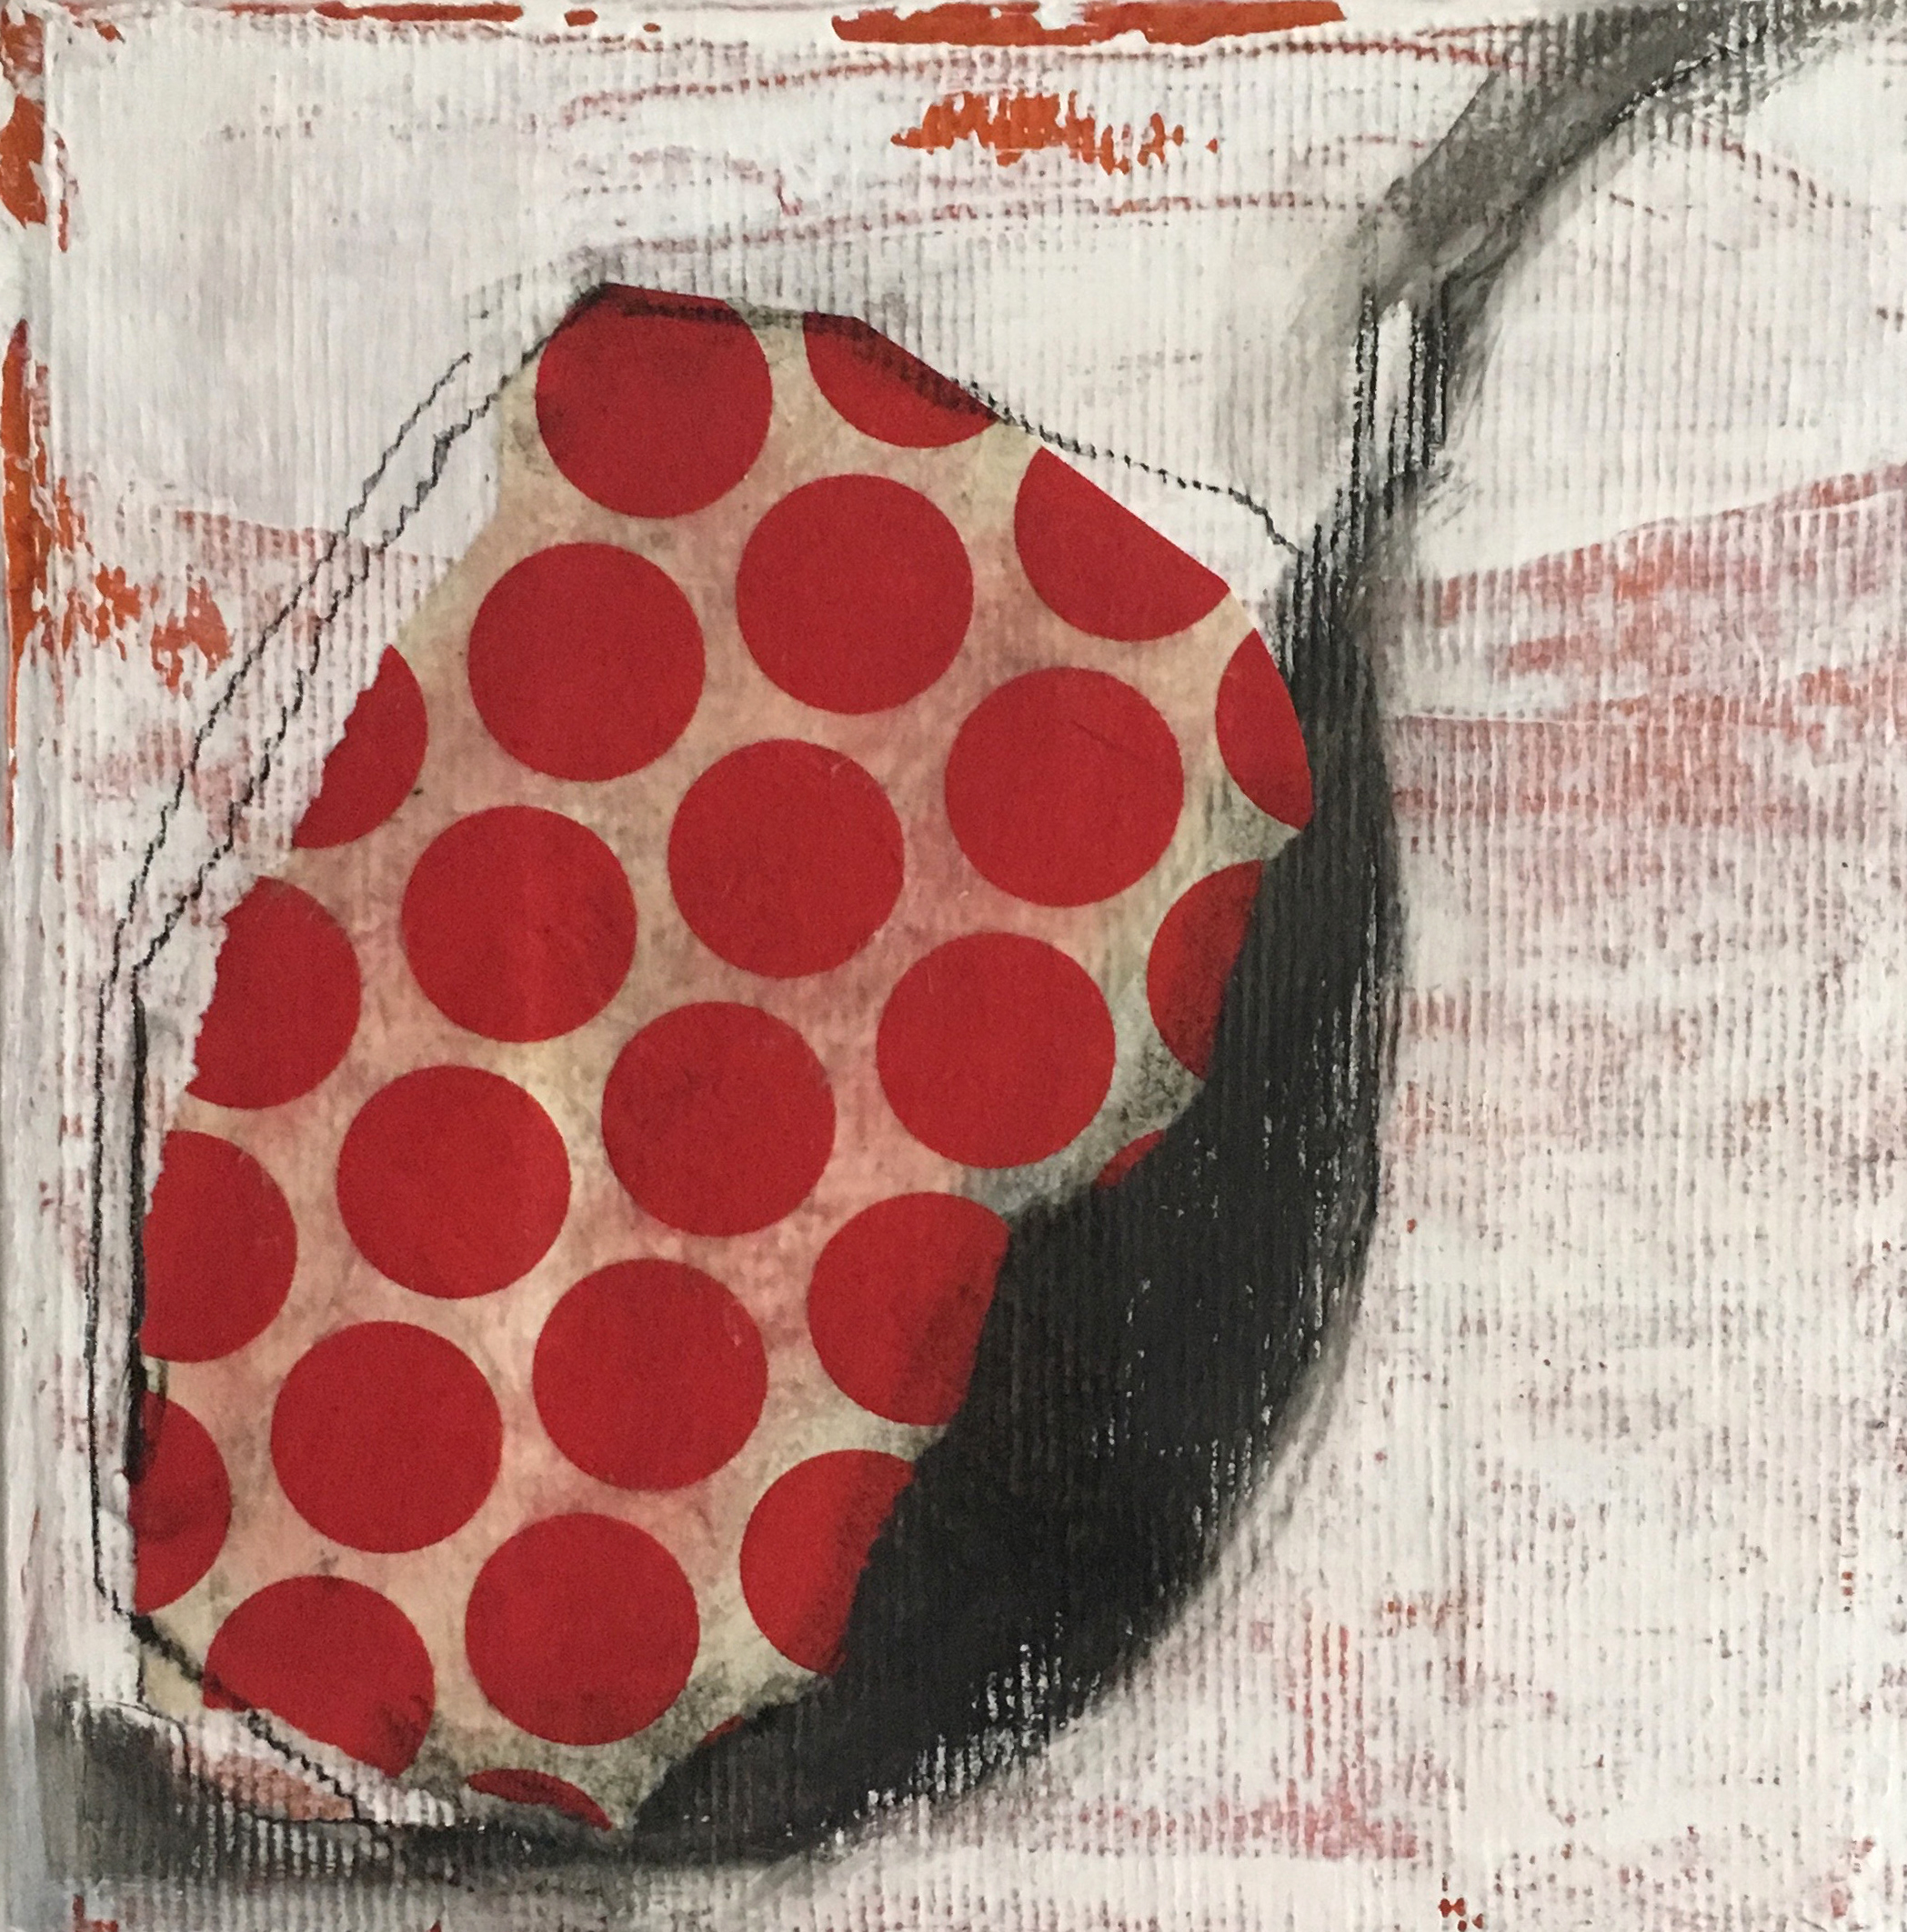 Red Dots with Black and White, 2019, mixed media on reused canvas, 8 x 8 in, $450